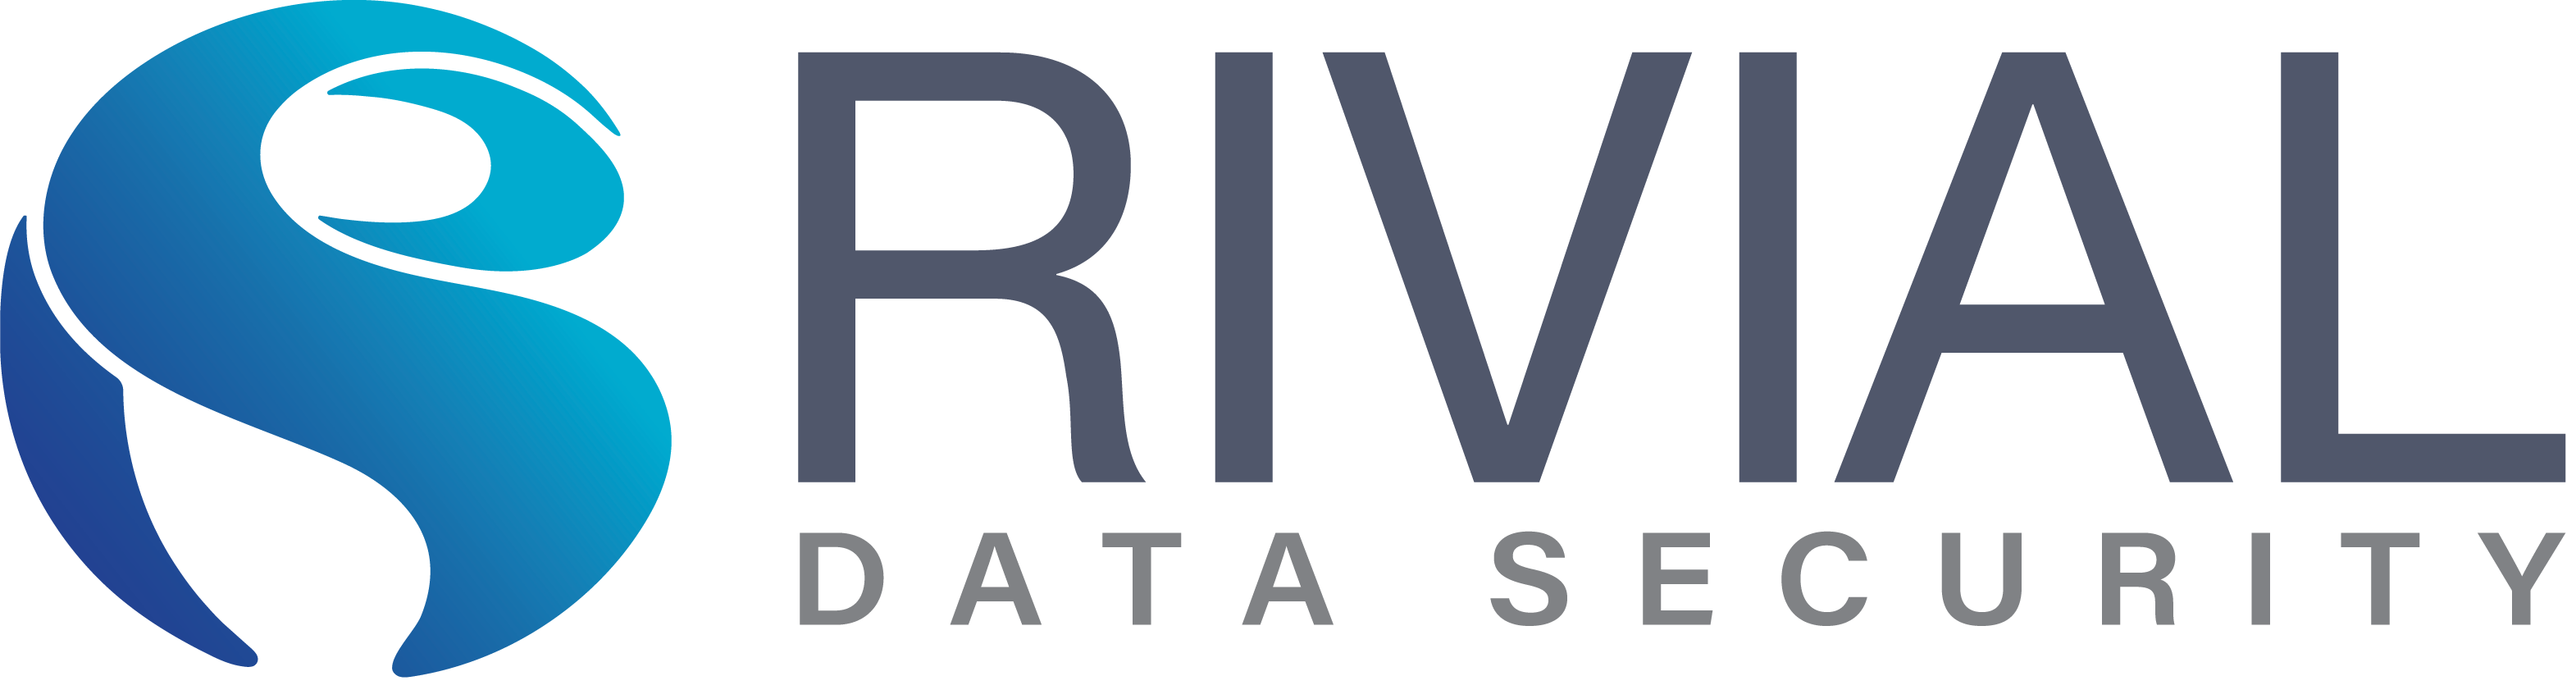 Rivial Data Security Logo